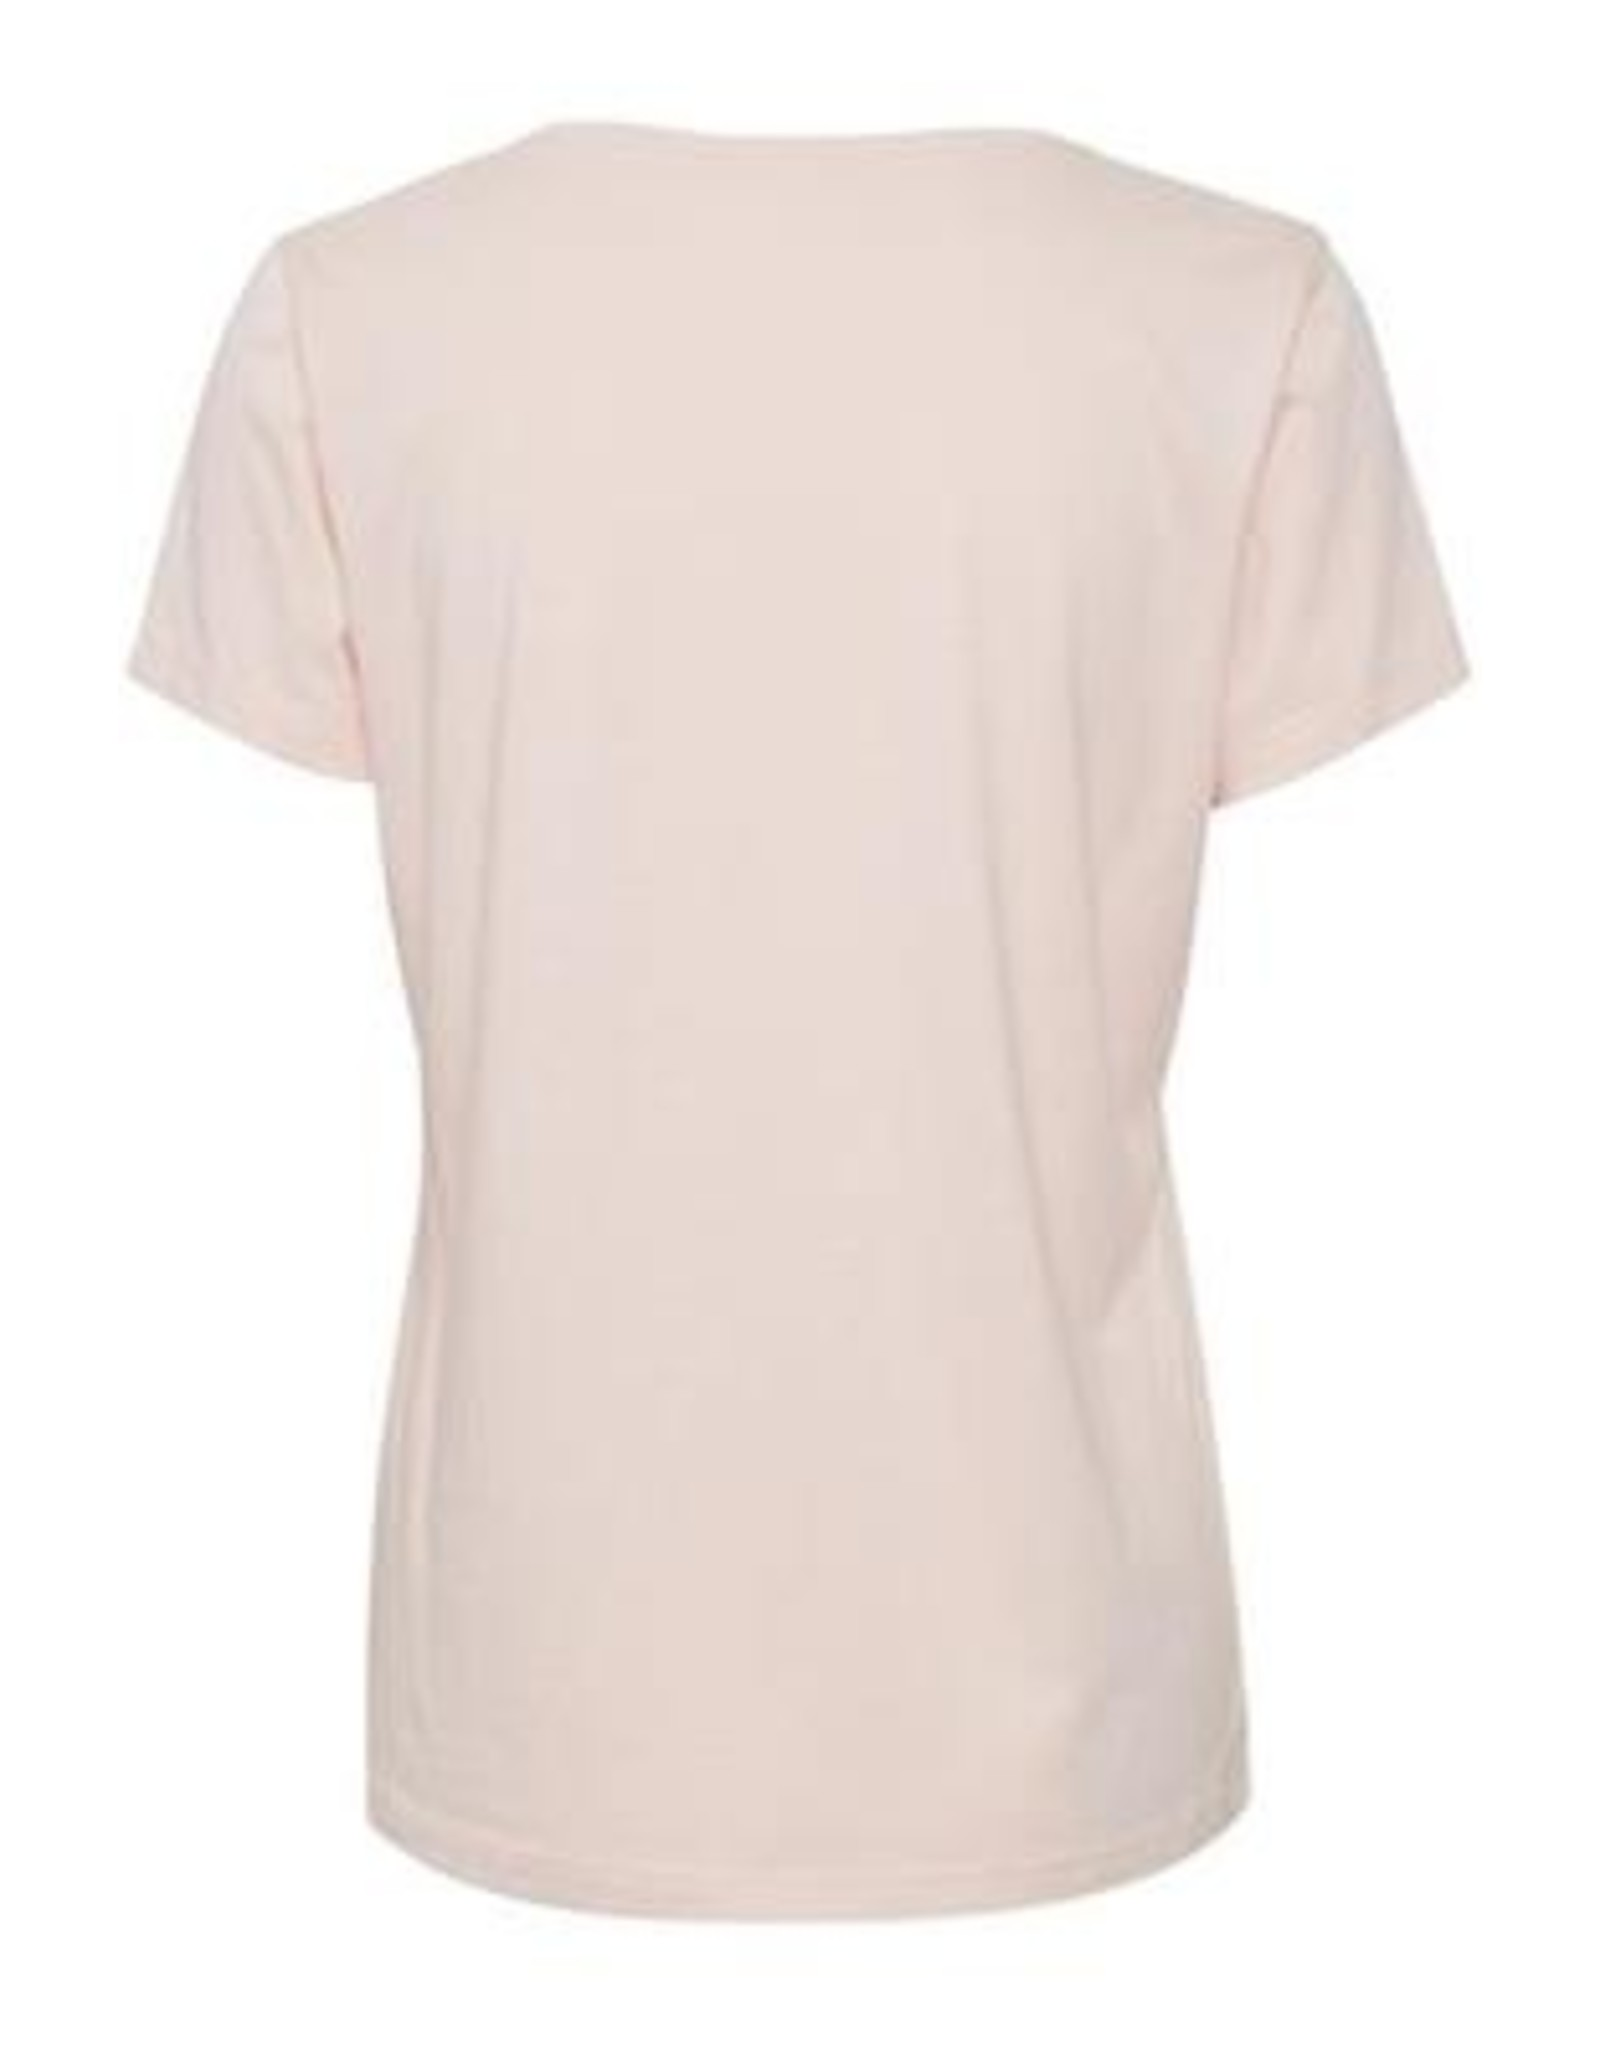 Cream Naia t-shirt